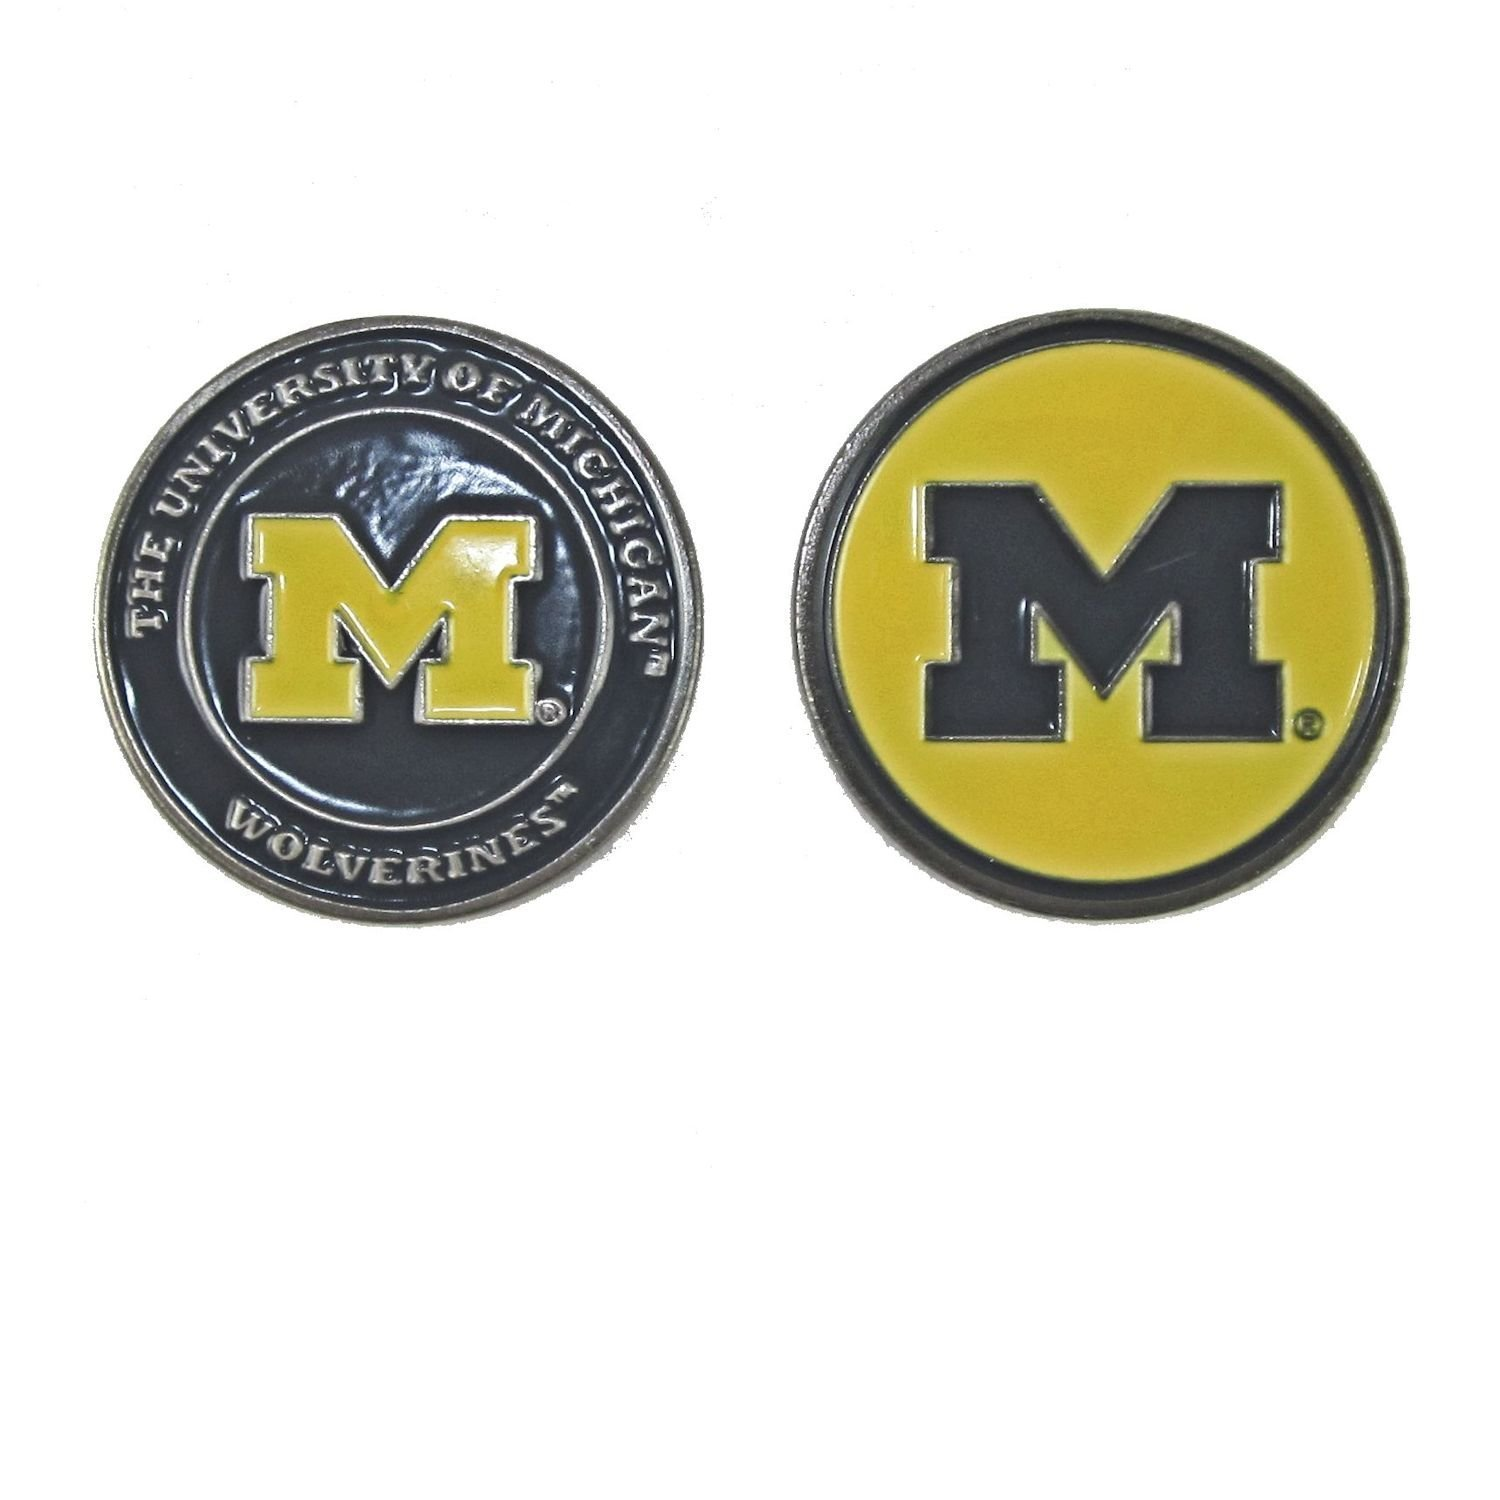 Michigan Wolverines NCAA Double-Sided Golf Ball Marker, 1 Team Logo Double Sided Ball Marker By Waggle Pro Shop,USA